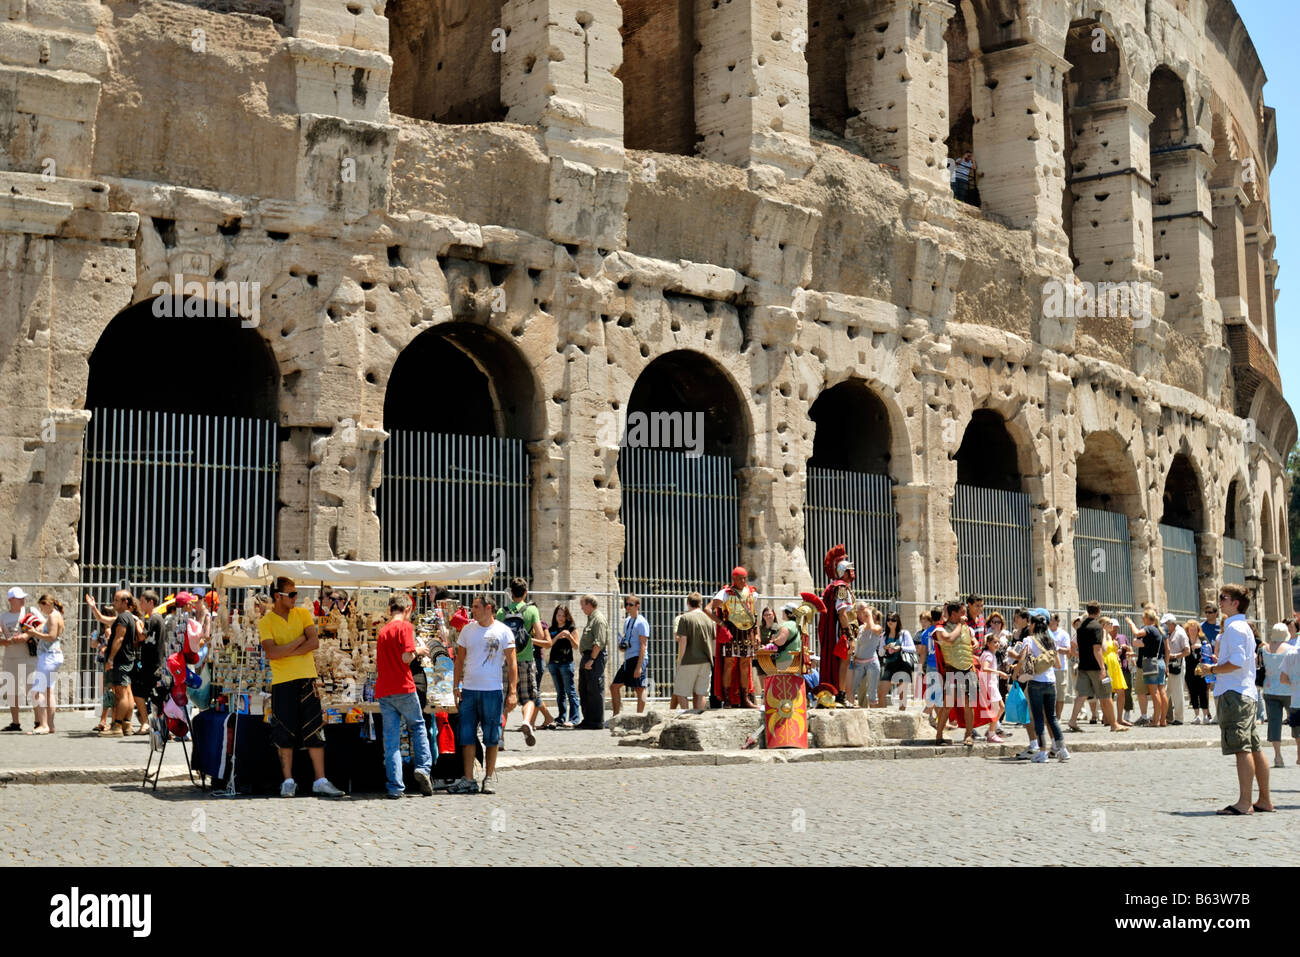 690adc982 A street trader sell fake brand goods to tourists by the Colosseum and Roman  soldiers pose